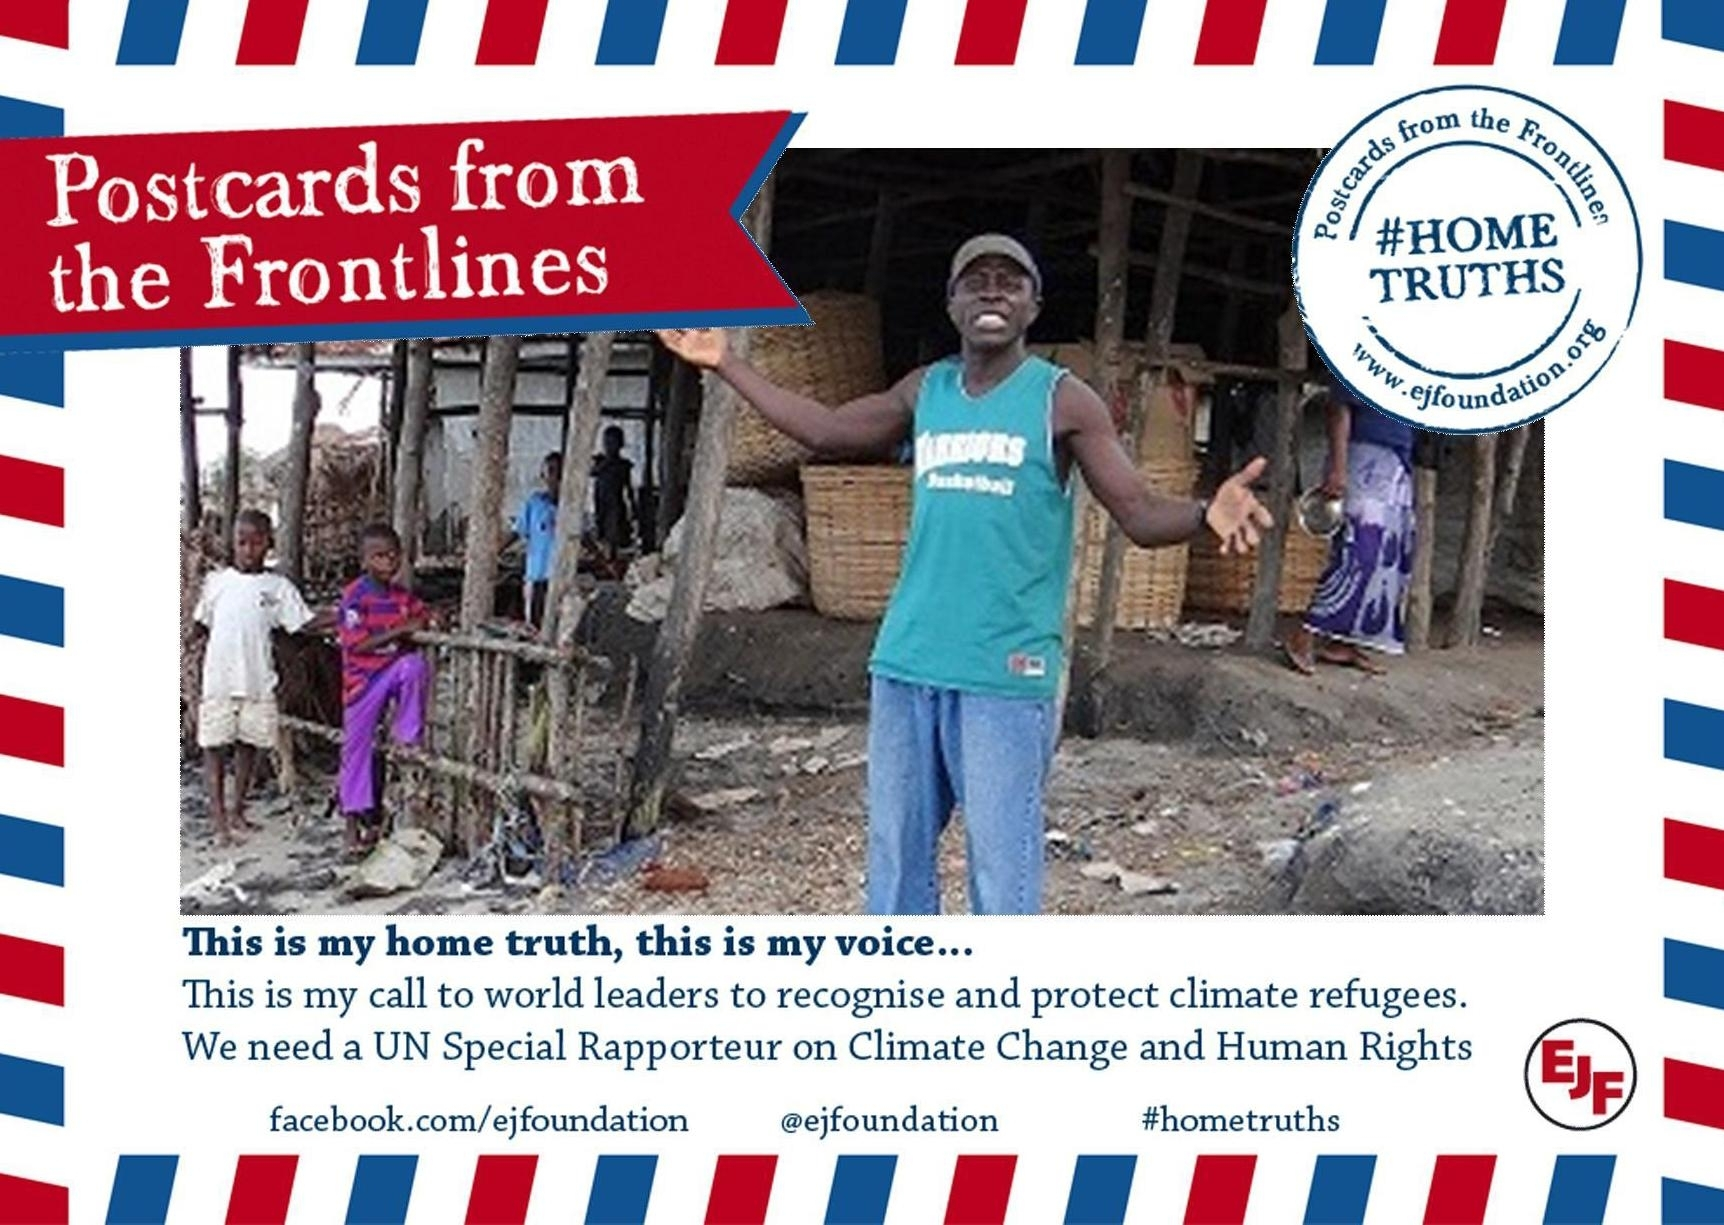 Postcards from the Frontlines will be sent to the UN on the occasion of the Climate Summit